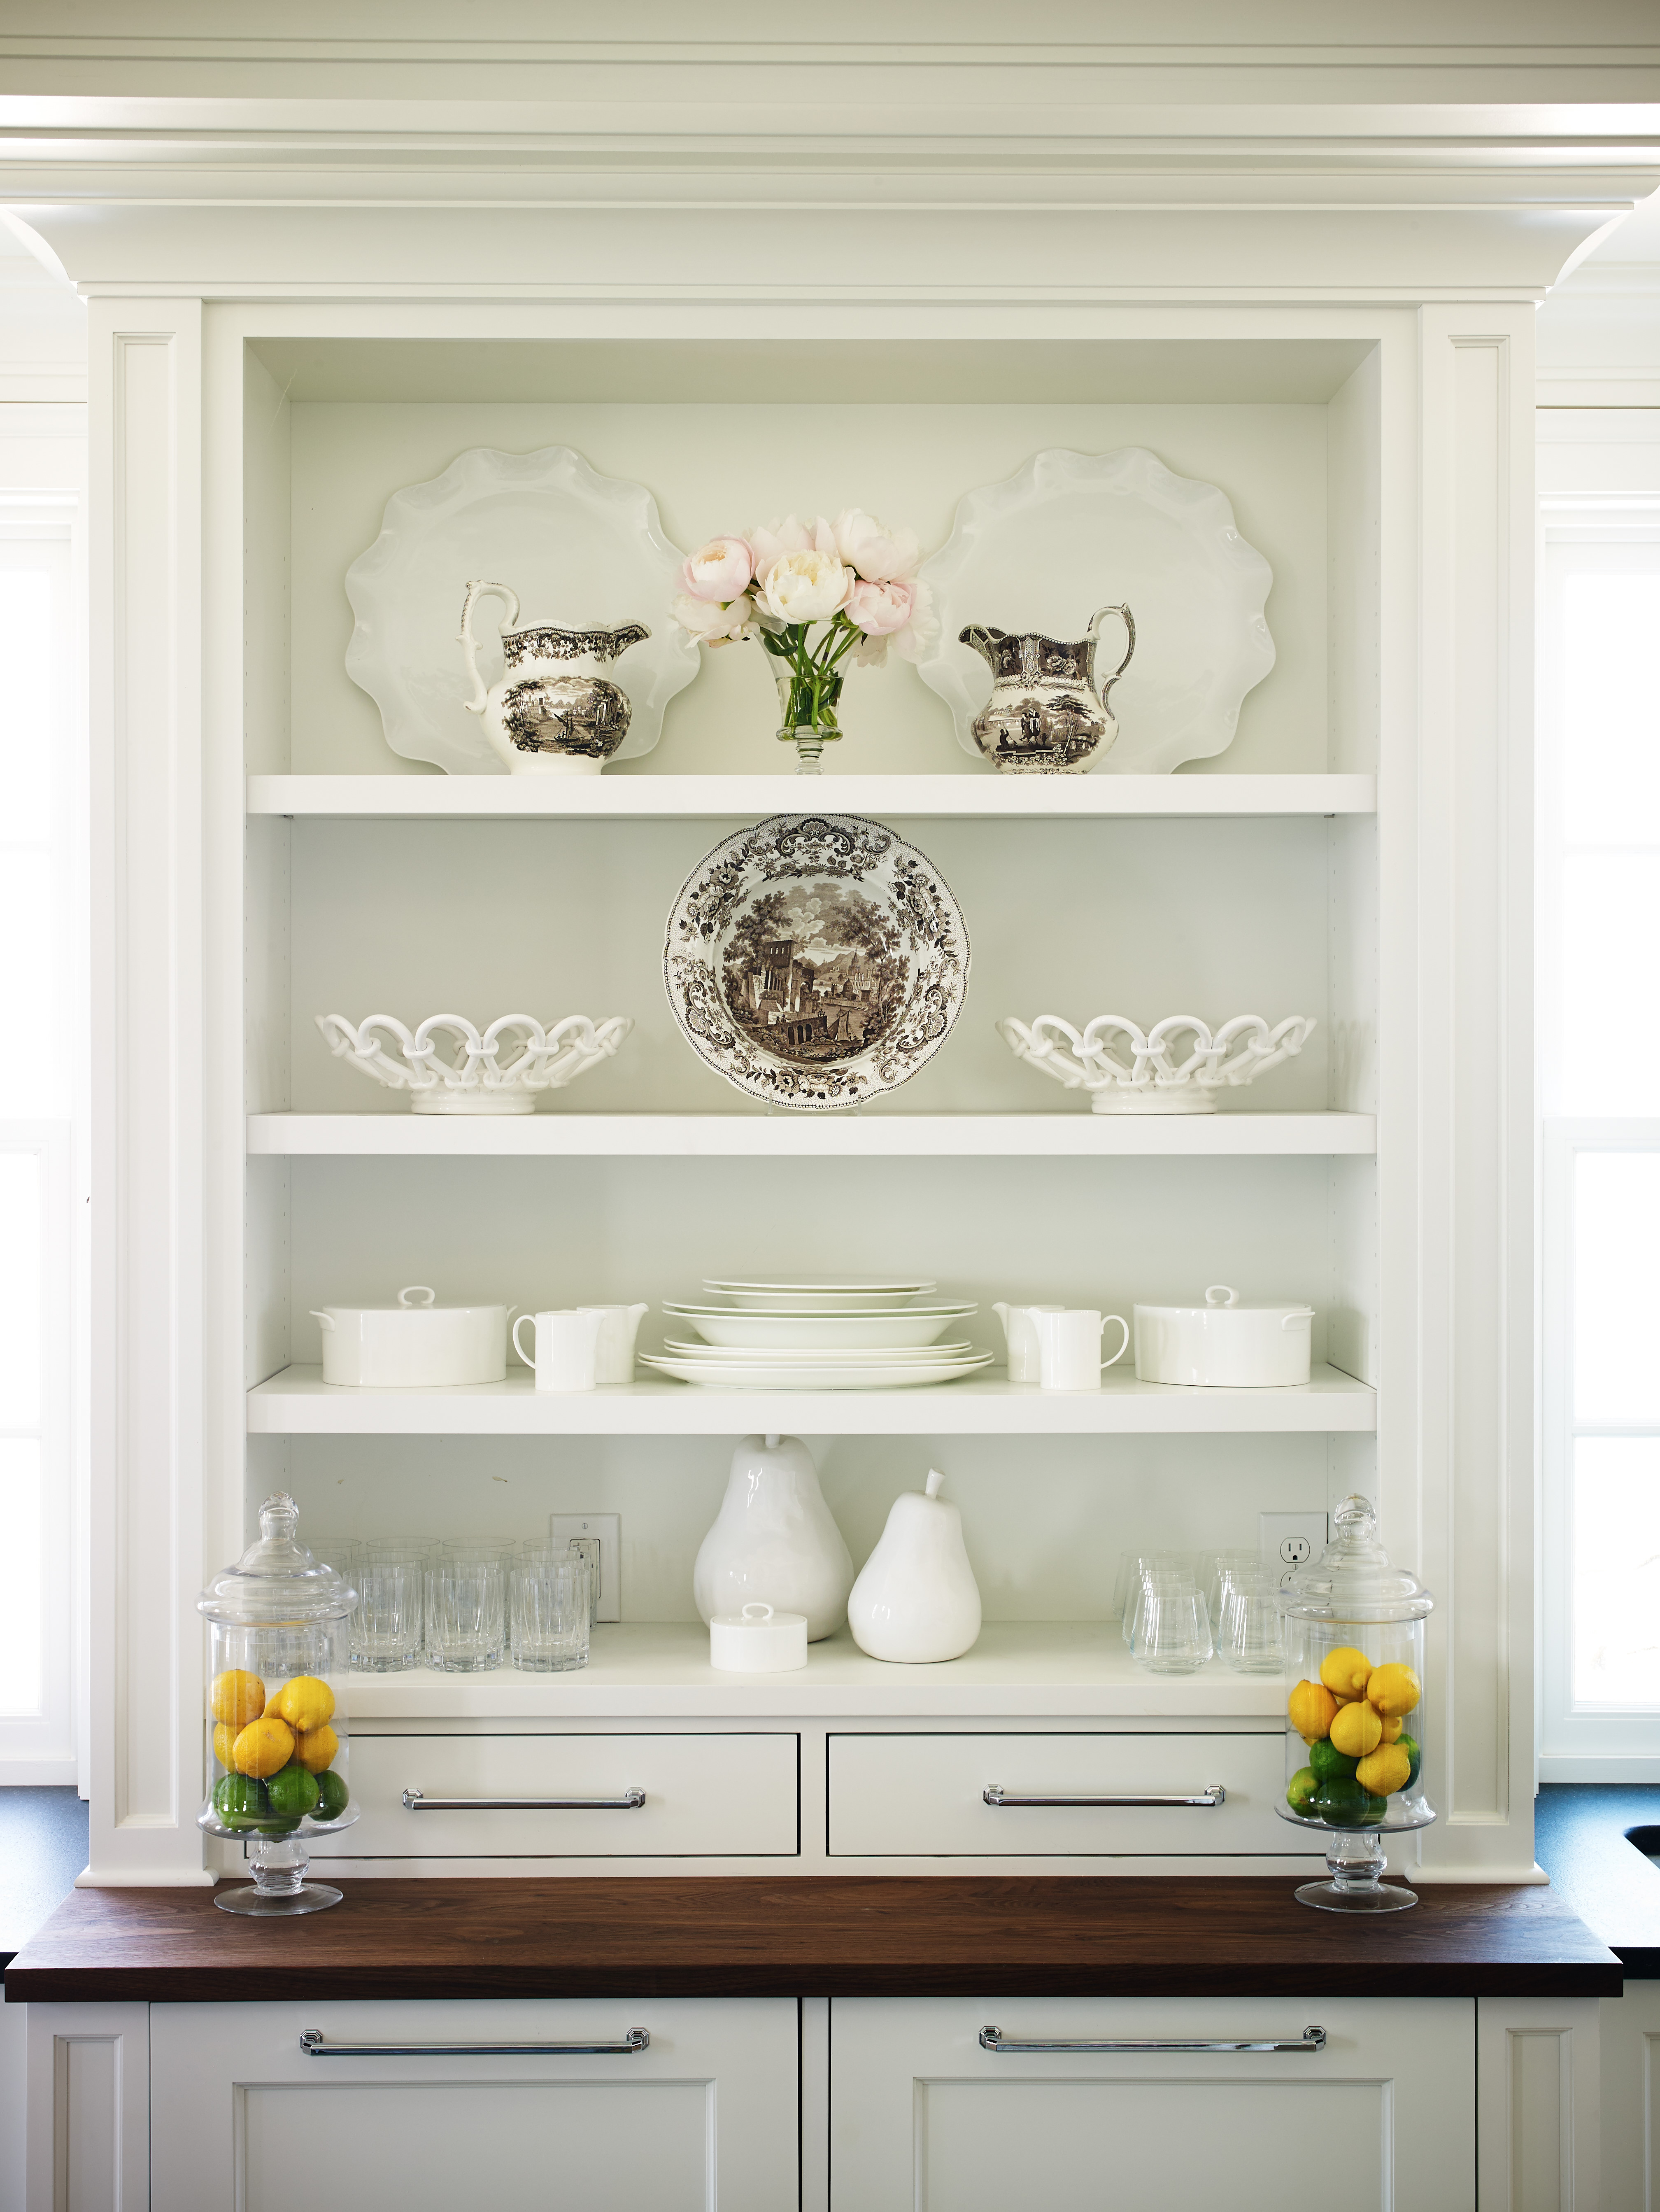 Elegant Custom Millwork Throughout the Lighthouse